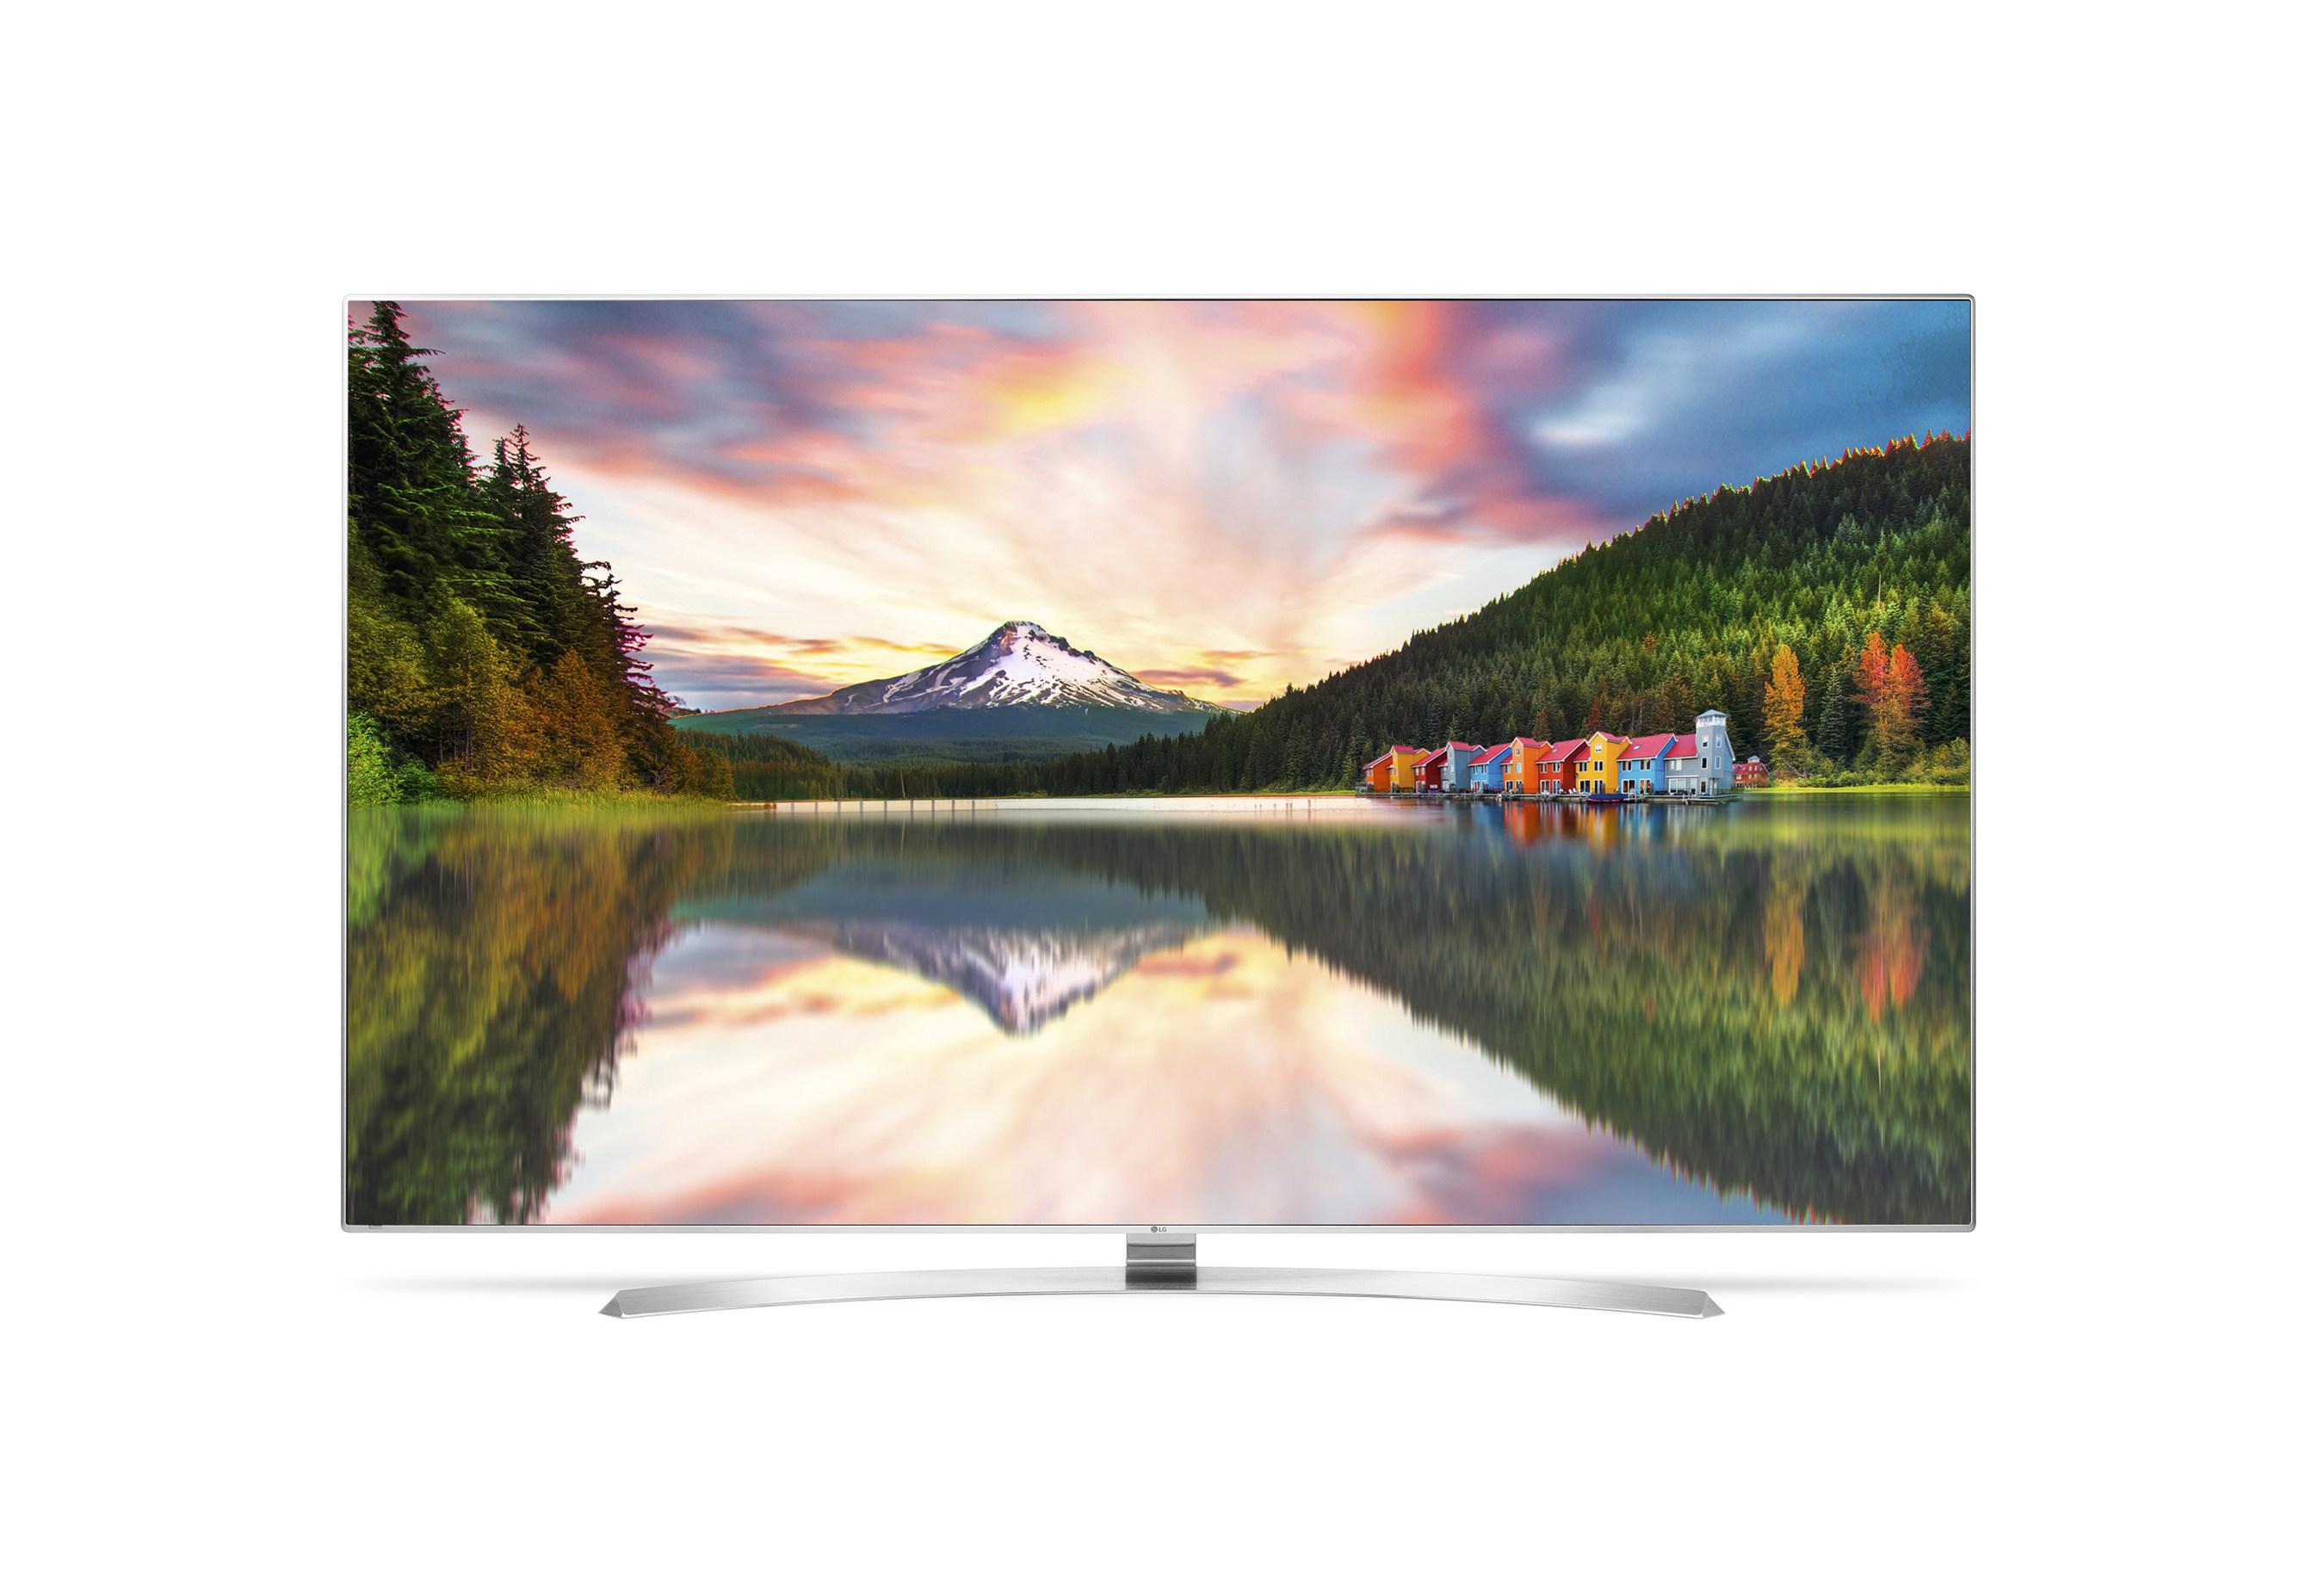 "LG Electronics will unveil ""LG SUPER UHD,"" a new premium line of 4K Ultra HD TVs at CES (R) 2016 in Las Vegas next week. Leading the company's 2016 4K Ultra HD LCD/LED TV lineup, LG SUPER UHD TV, which includes the UH9500 pictured, will feature LG's most advanced LCD/LED picture quality ever, with expanded color capabilities, advanced picture and sound-enhancing features including high dynamic range (HDR) and LG's alluring Flat ULTRA Slim design."